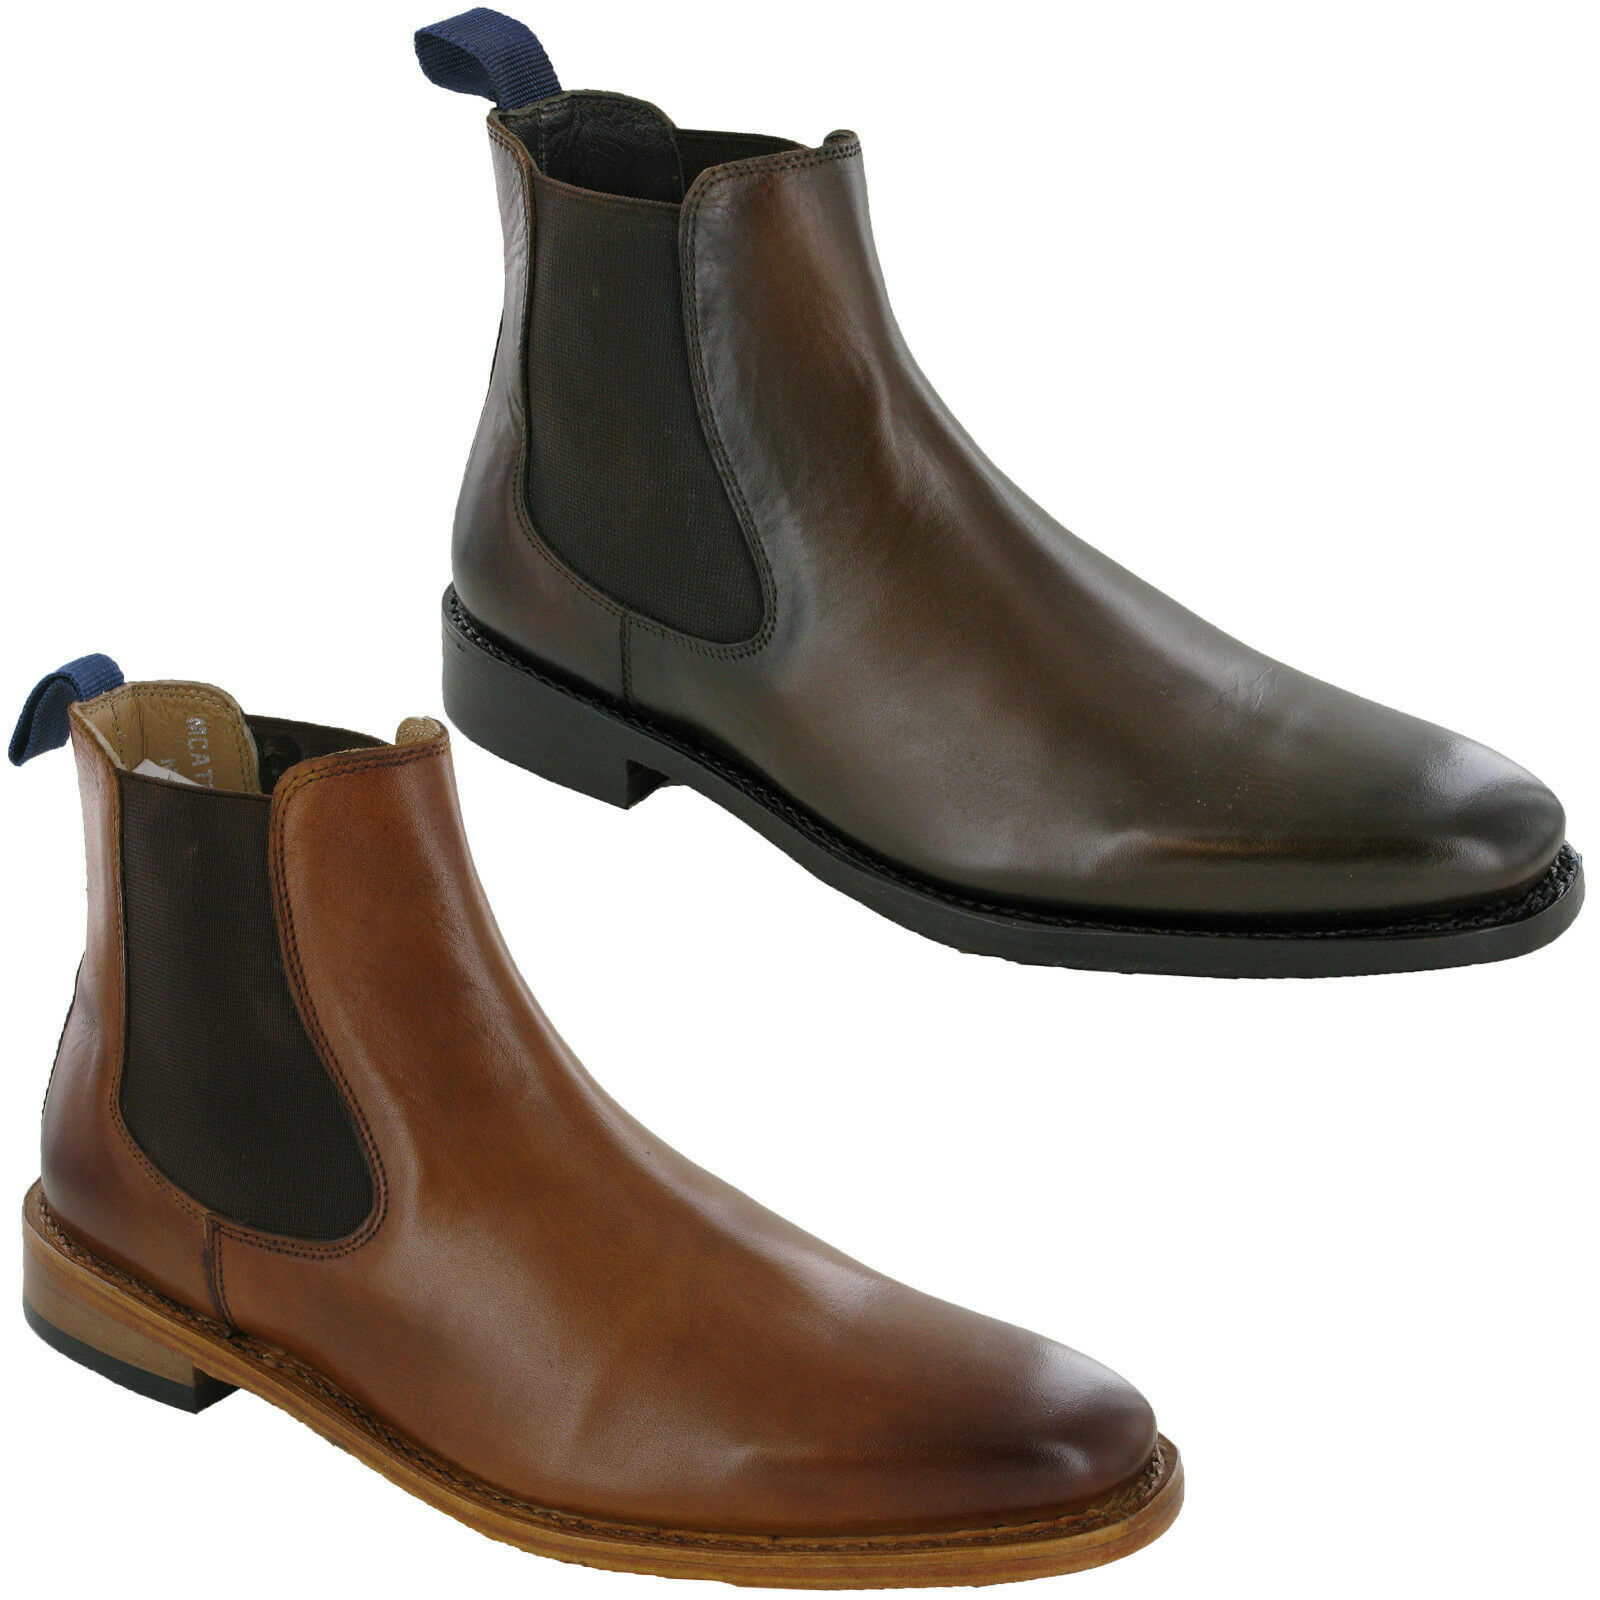 05679073d0c Mens Leather Chelsea Ankle Dealer Boots Catesby Twin Gusset Riding ...